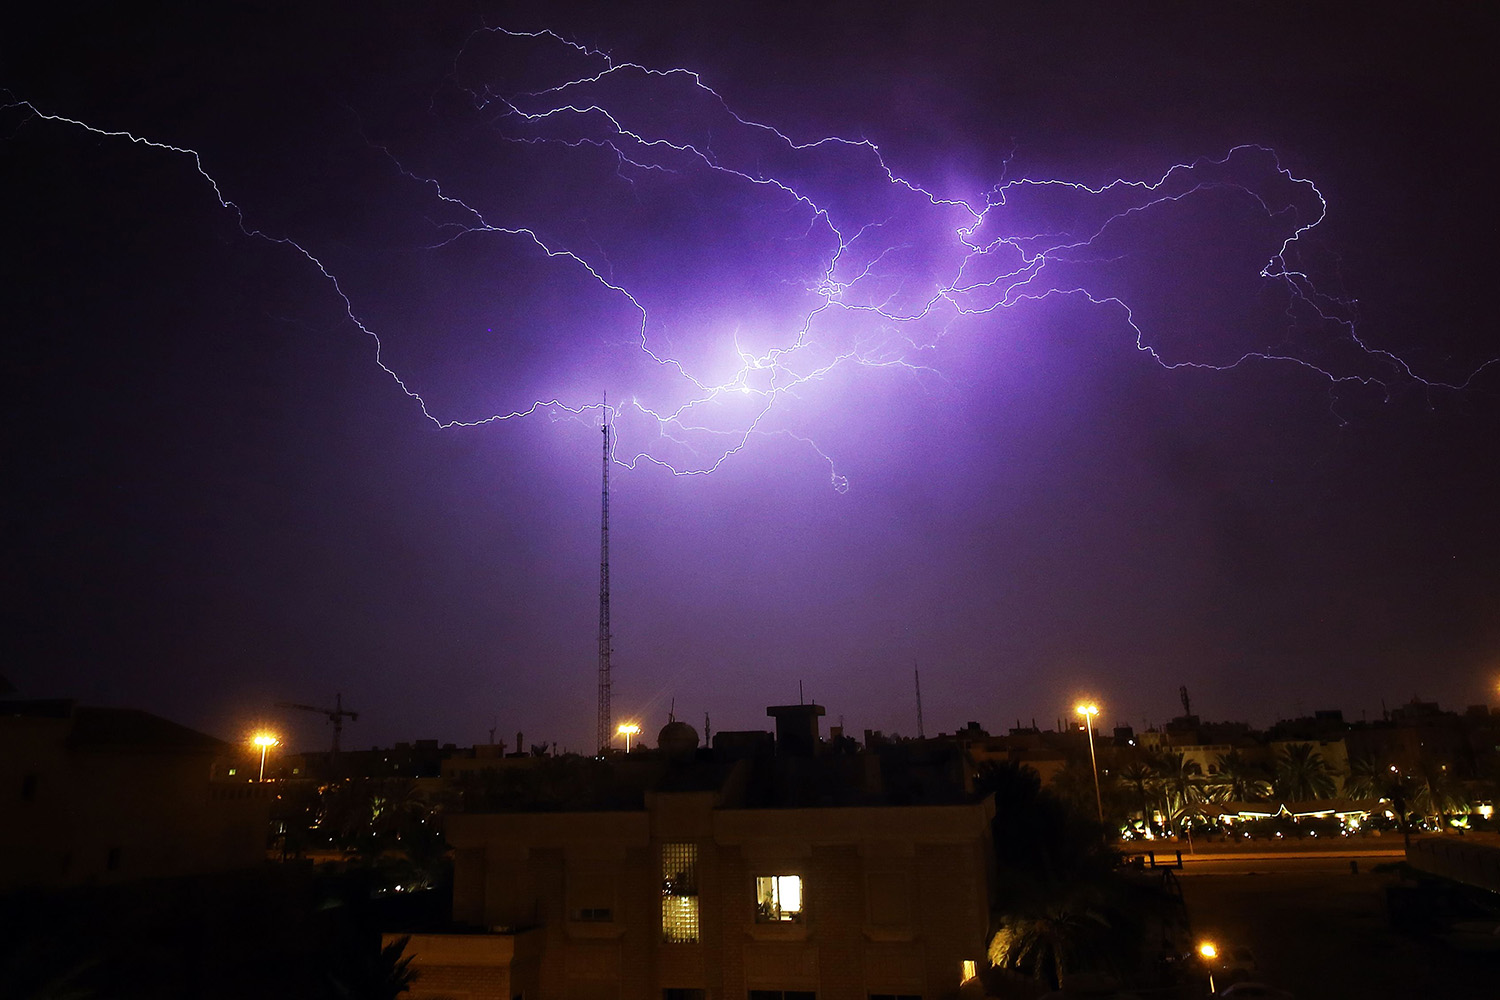 Lightning flashes in the sky over the district of Rumaithiya in Kuwait City during a storm April 7. YASSER AL-ZAYYAT/AFP via Getty Images